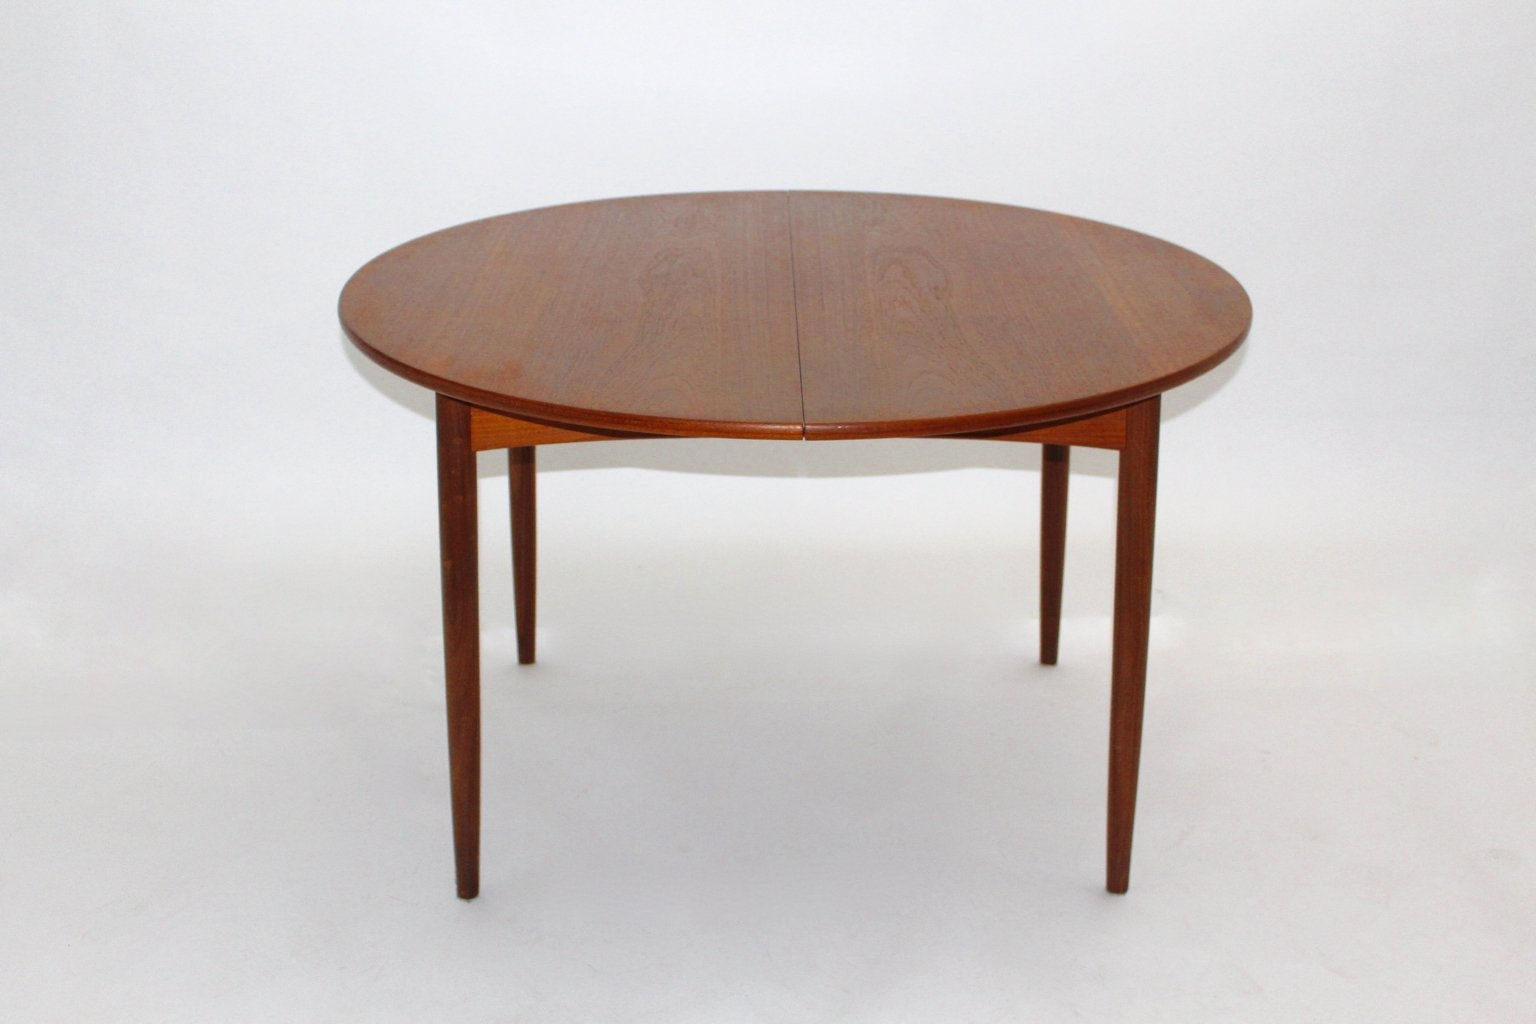 Danish Round Extendable Teak Dining Table 1960s for sale  : danish round extendable teak dining table 1960s 3 from www.pamono.com size 1536 x 1024 jpeg 832kB